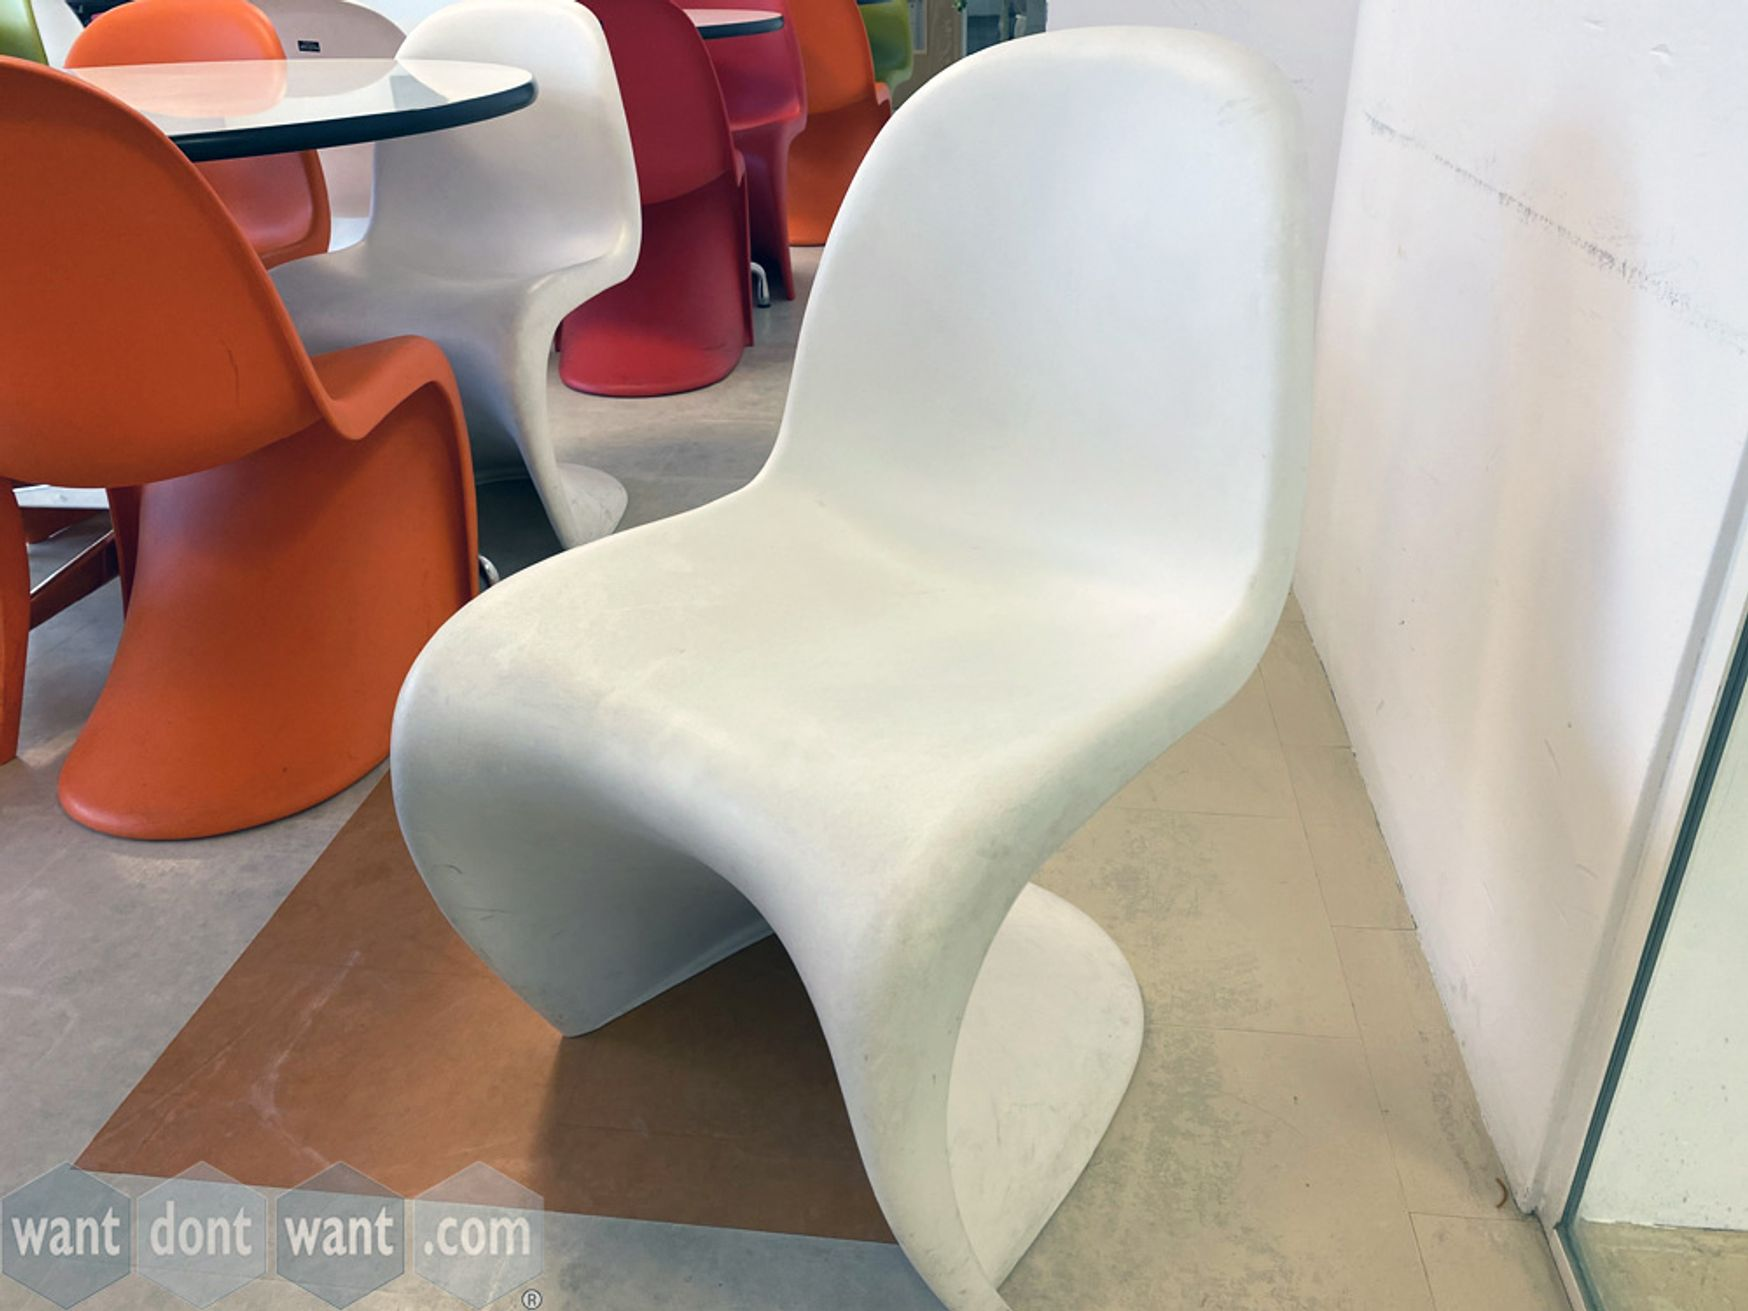 Used iconic design Vitra 'Panton' chairs in white.